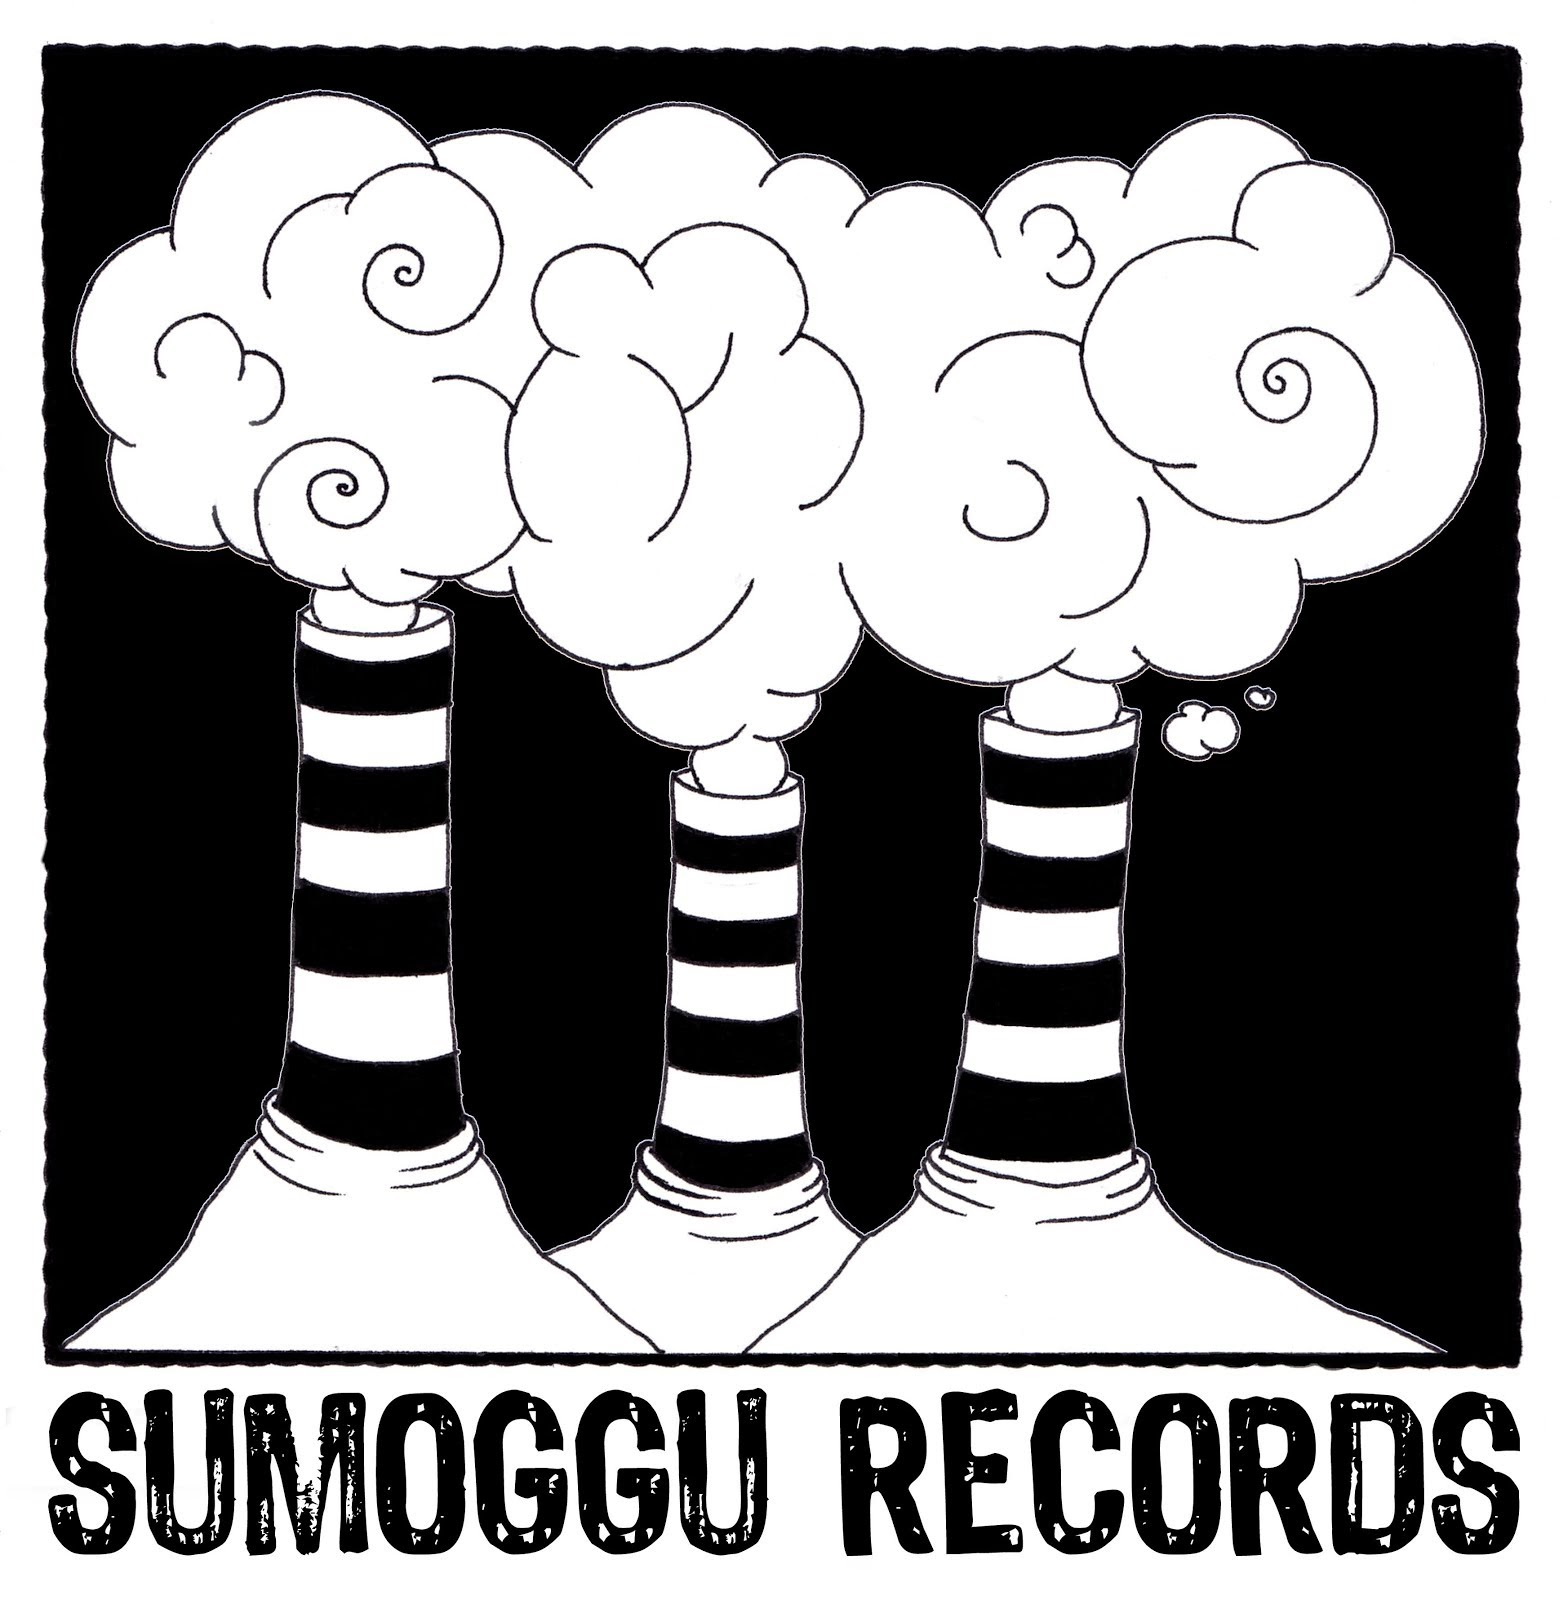 Sumoggu Records